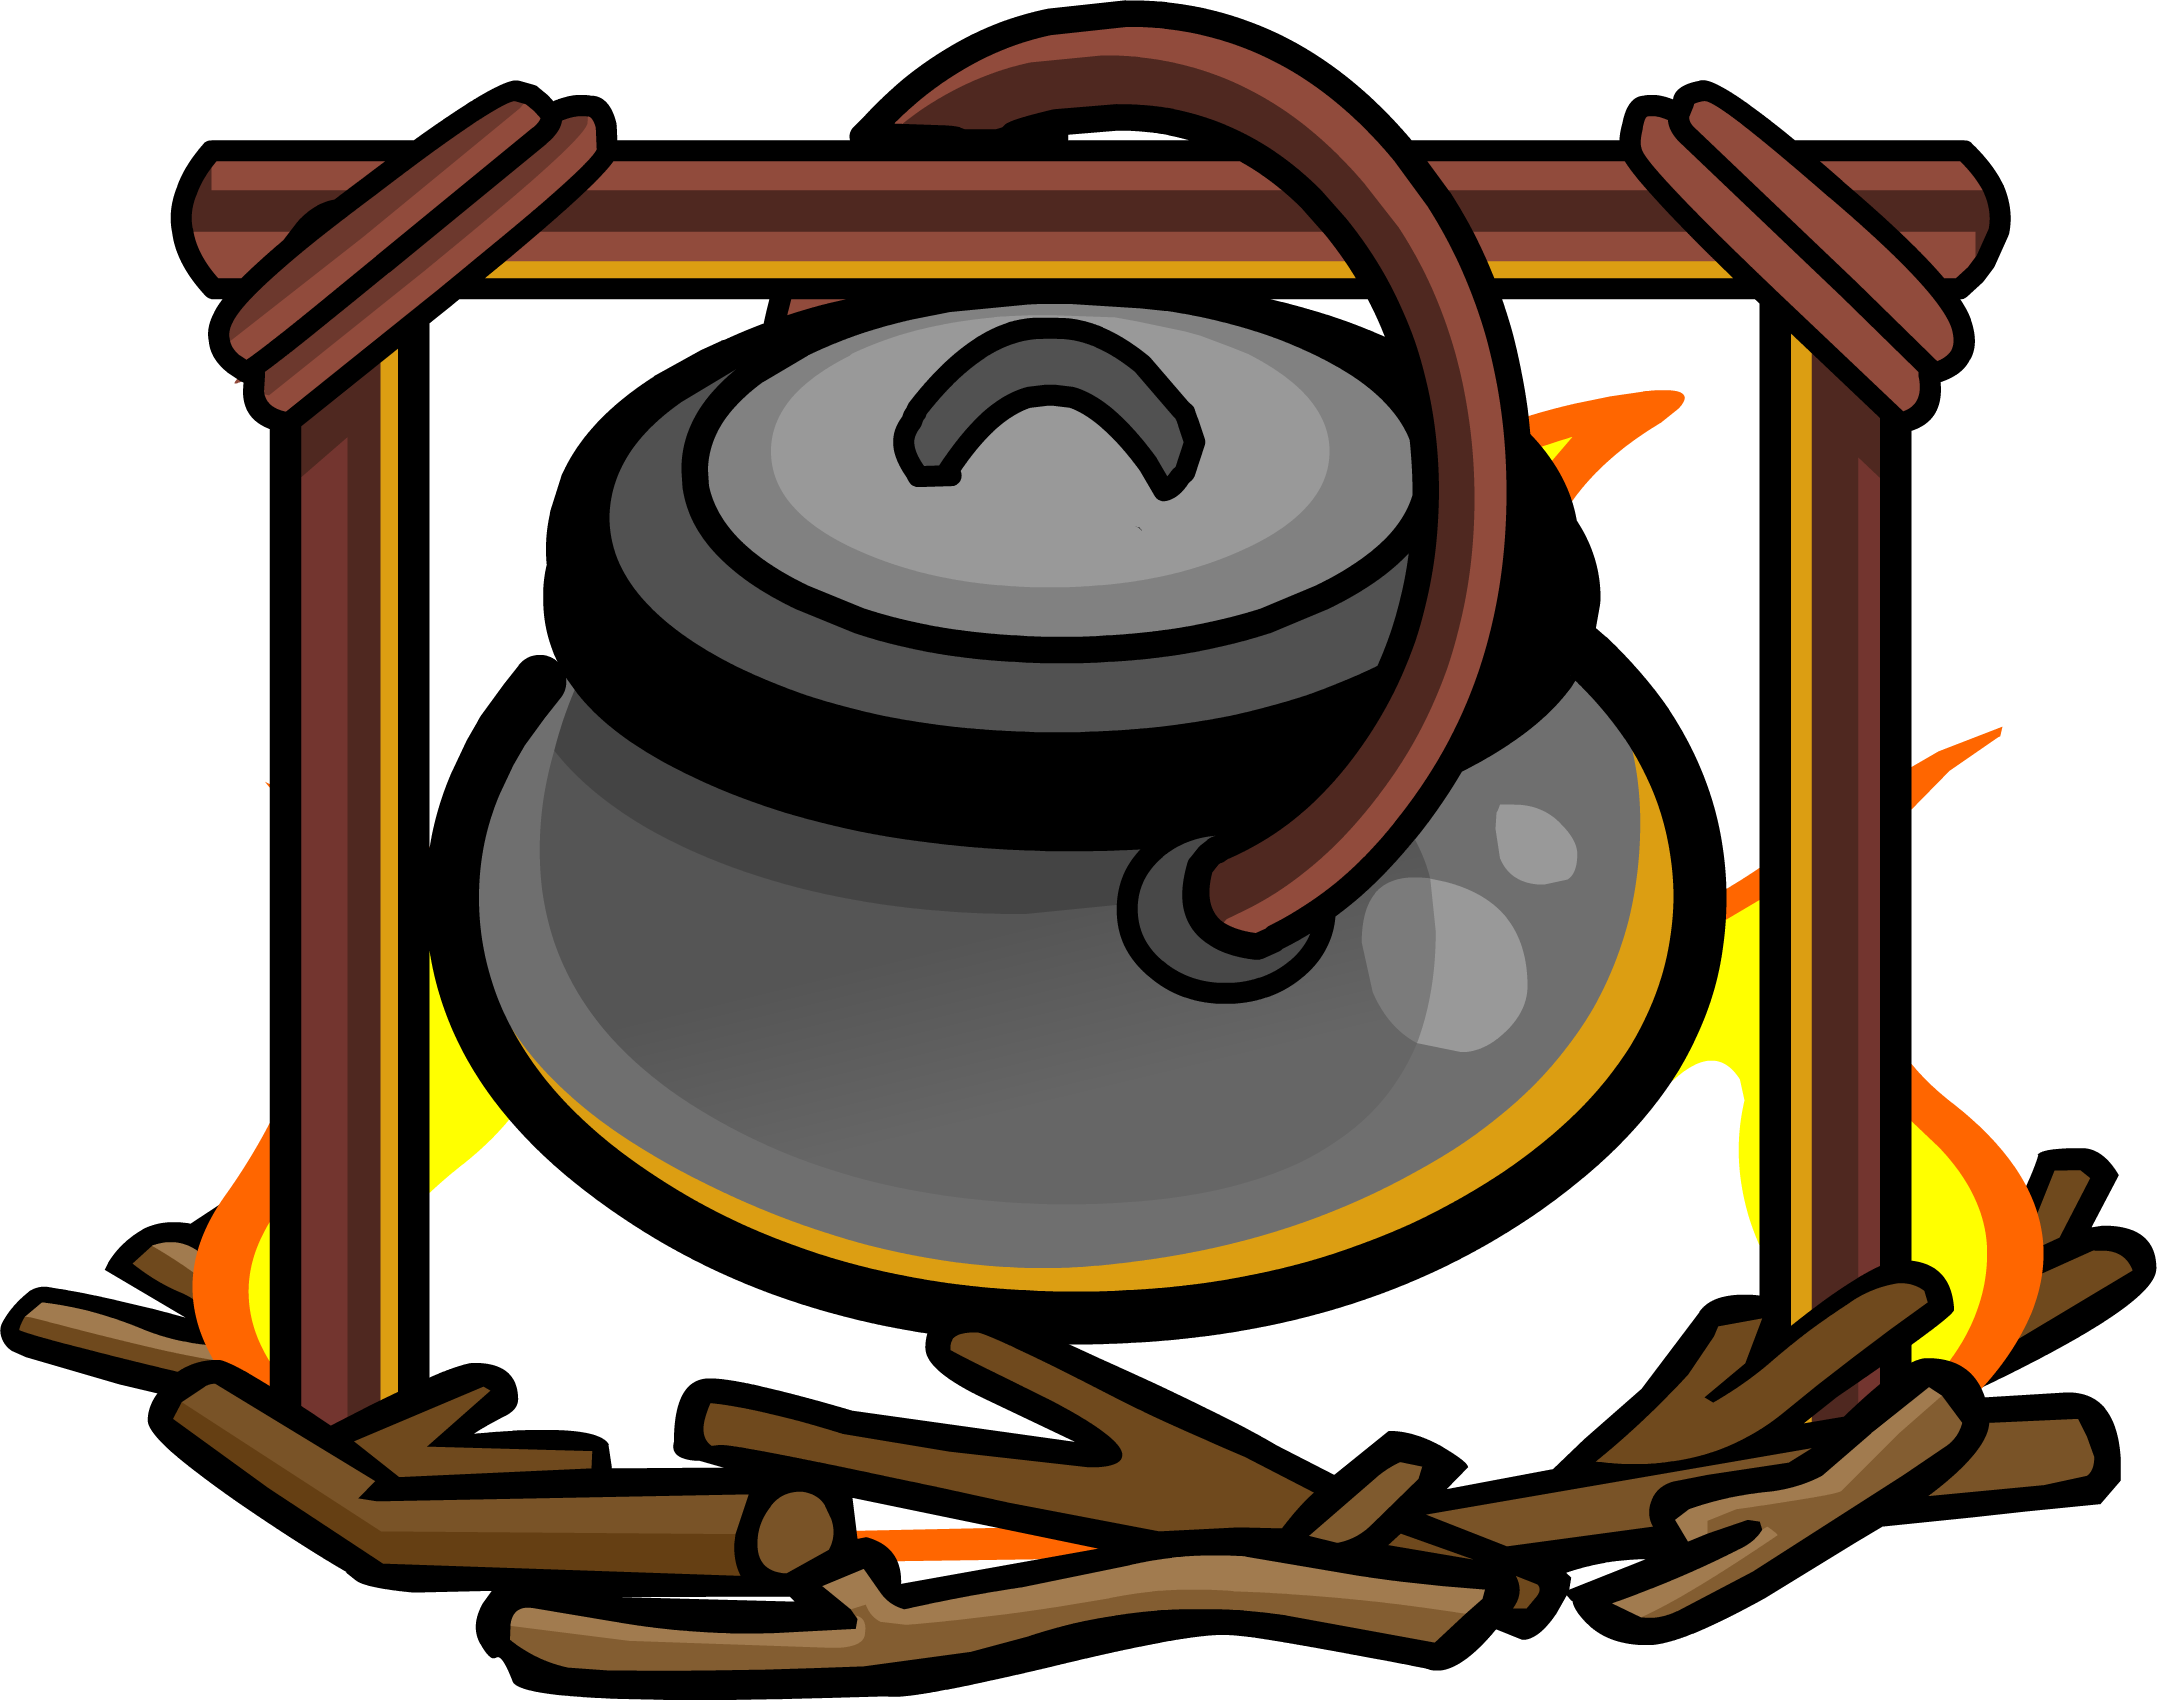 Boiling Cauldron